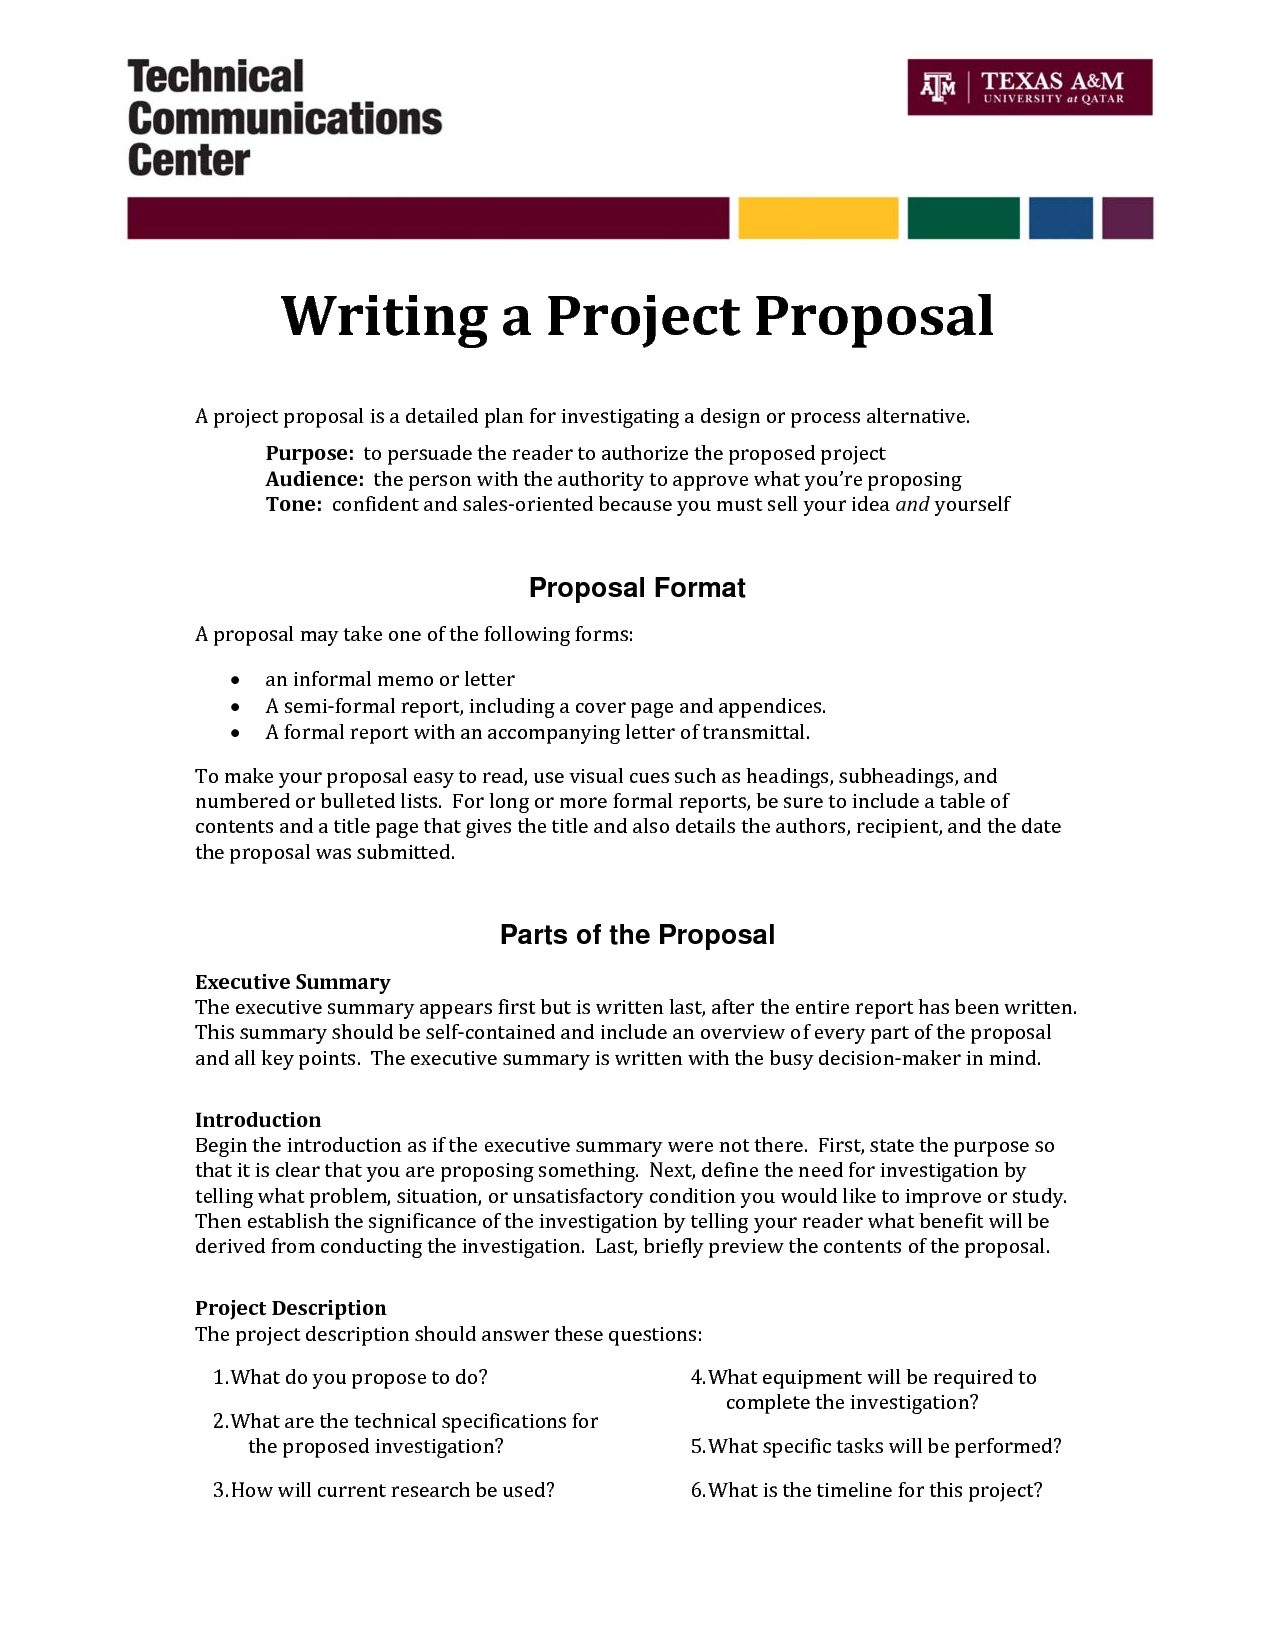 Informal proposal letter example writing a project for Community service proposal template